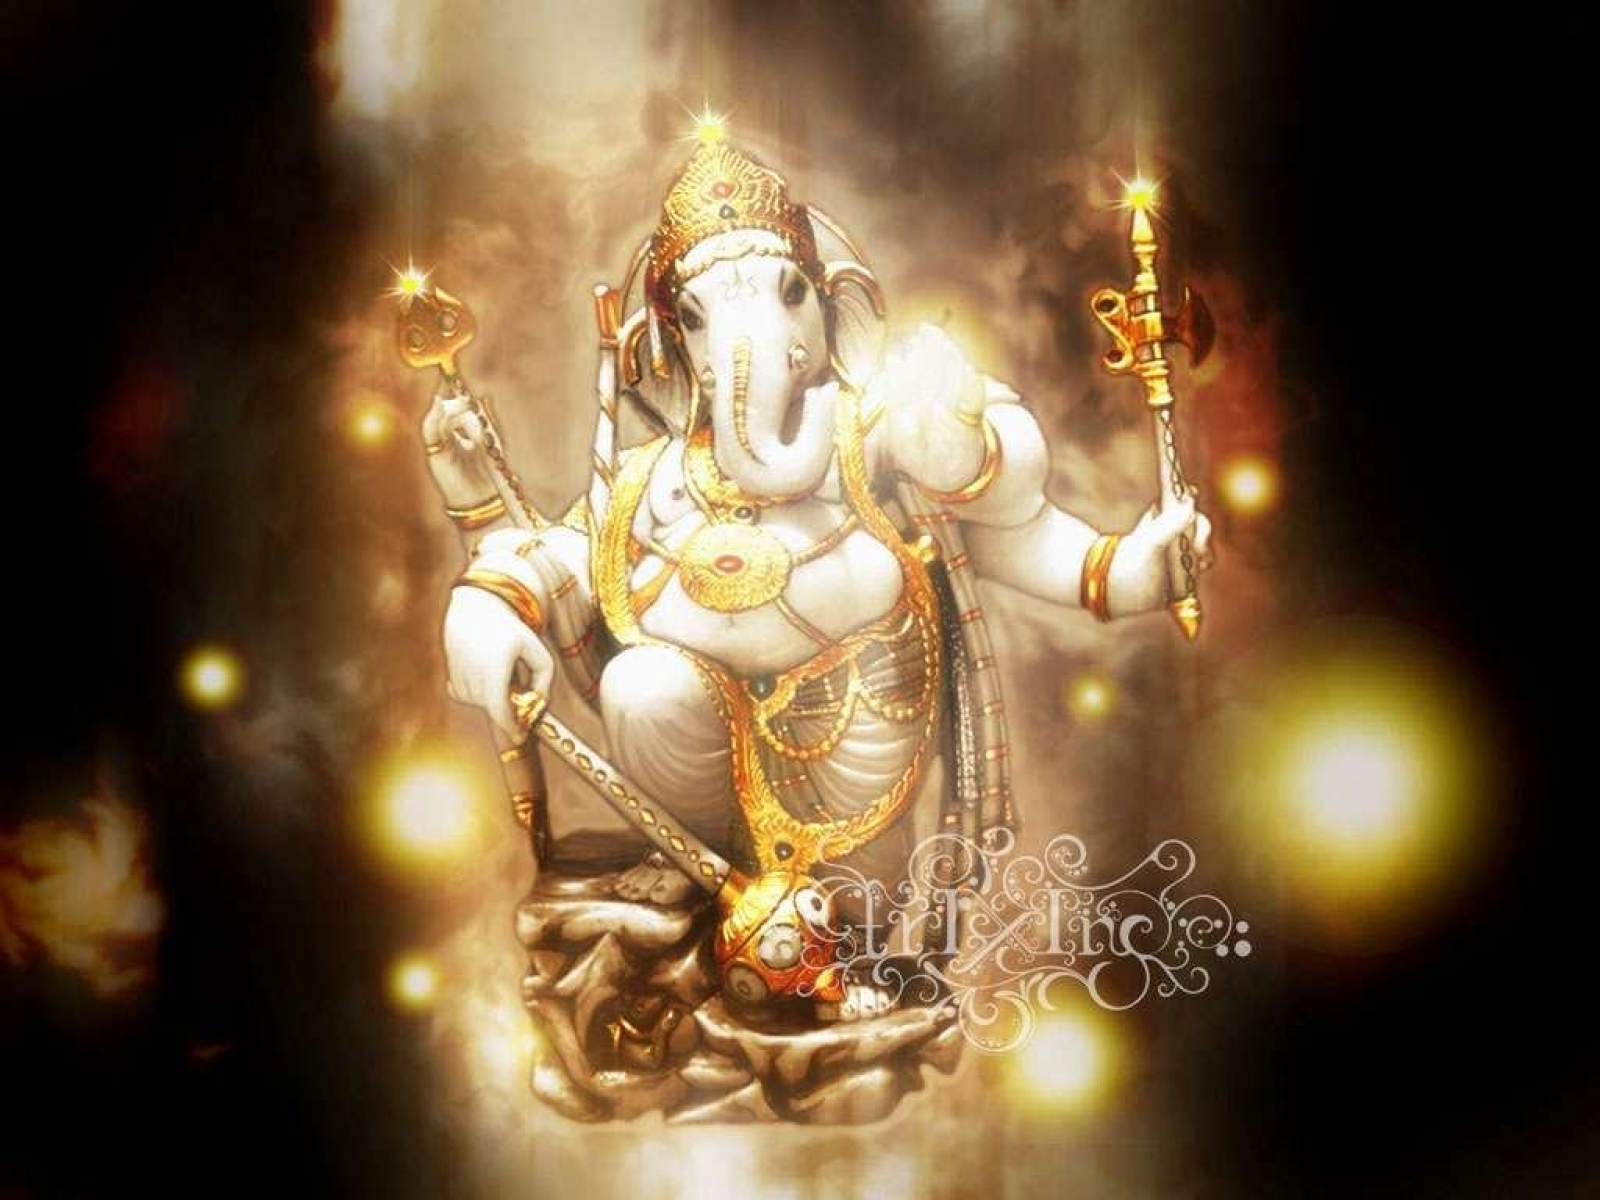 essay on lord ganesha the lord of ganesha tumblr well ipnodns ru essay example ipnodns ru the lord of ganesha tumblr well ipnodns ru essay example ipnodns ru